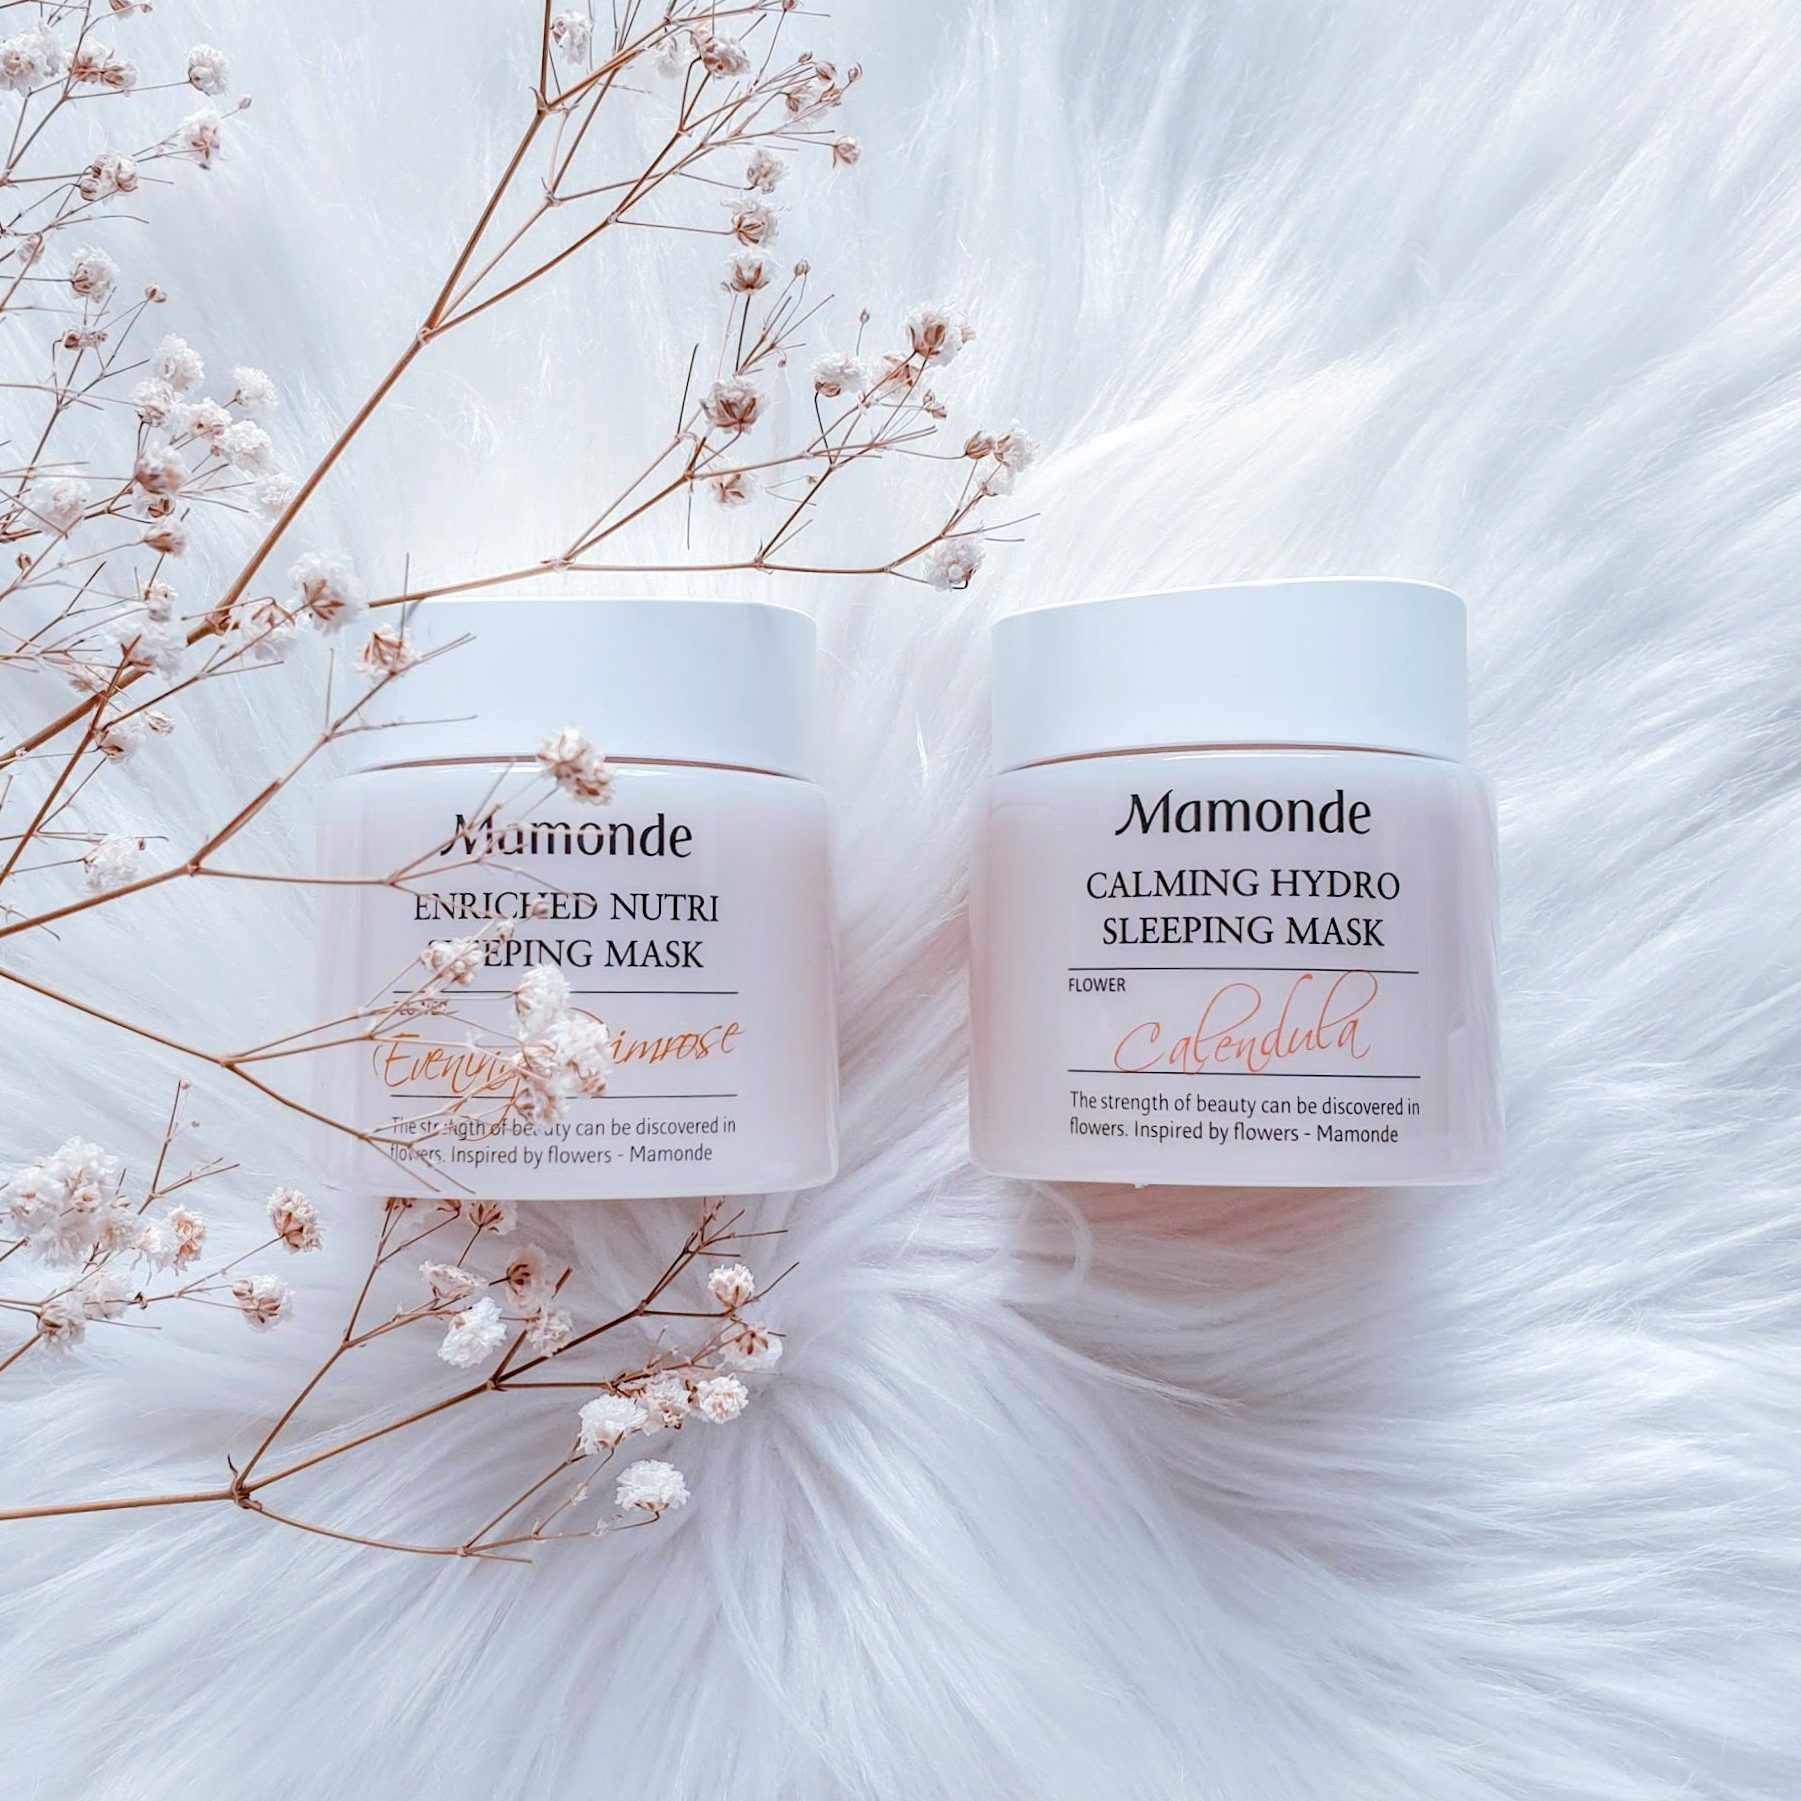 Mamonde Calming Hydro Sleeping Mask & Enriched Nutri Sleeping Mask | Review